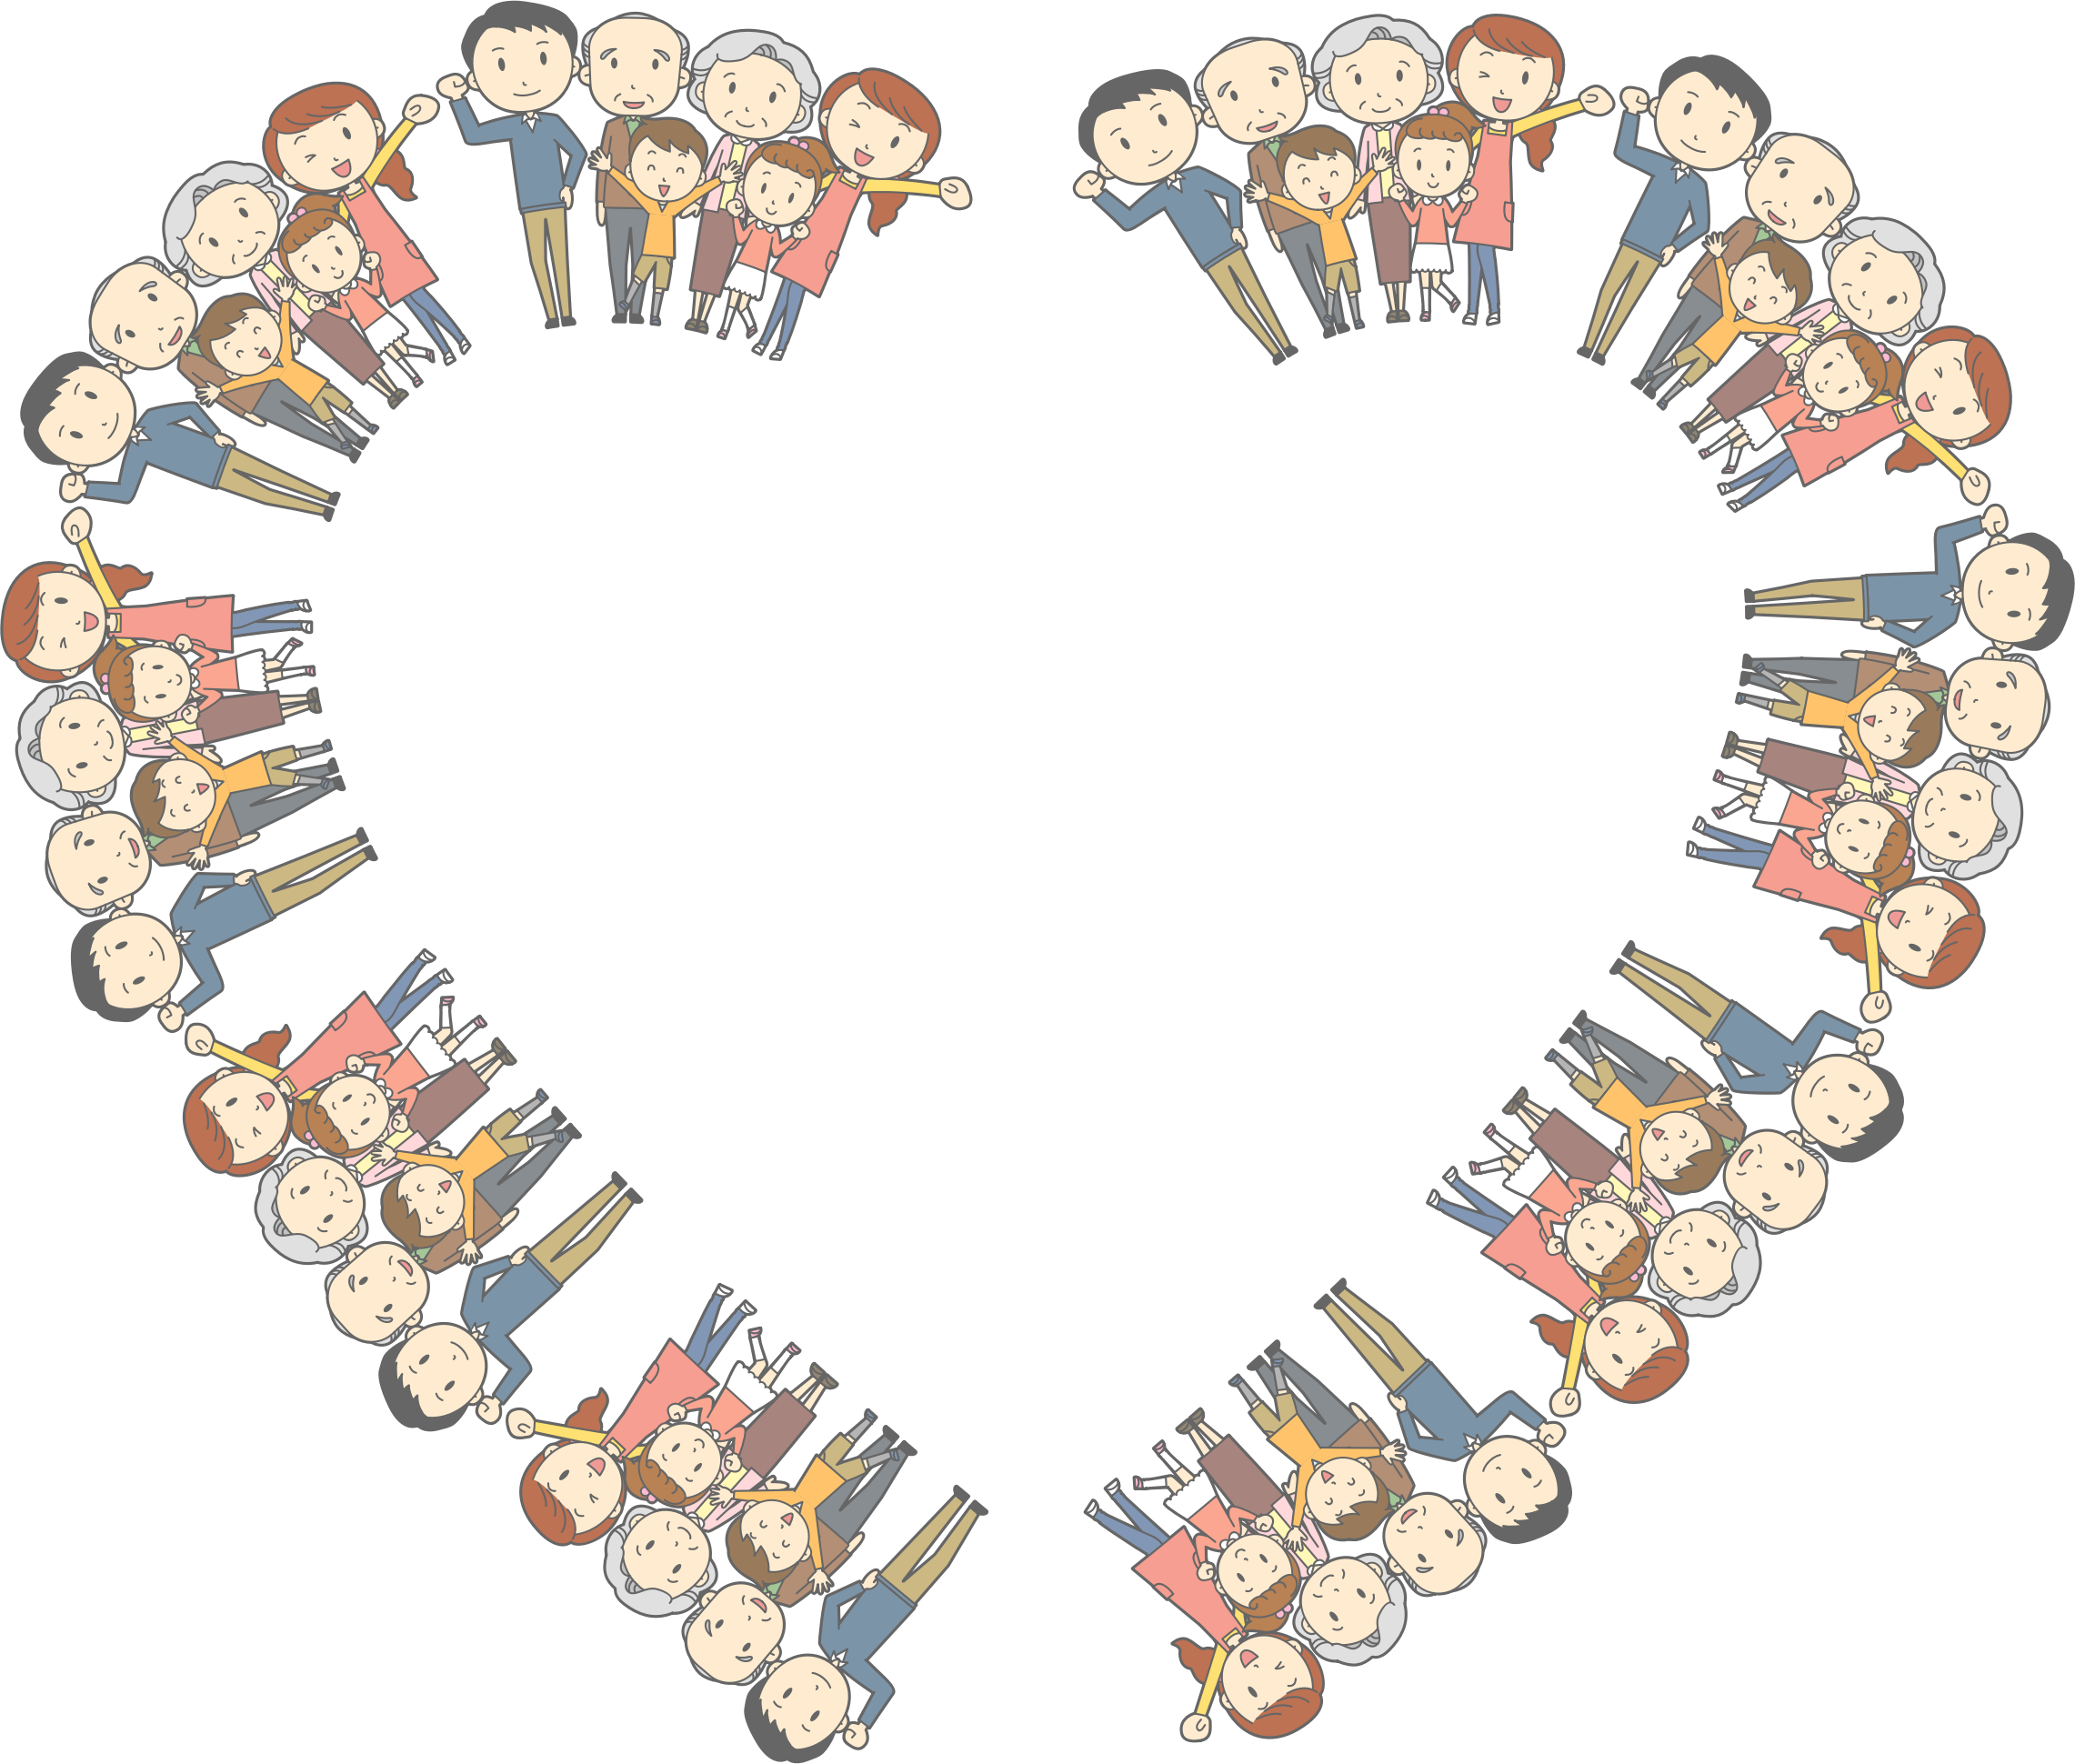 Clipart - MultiGenerational Family Heart Frame graphic free library